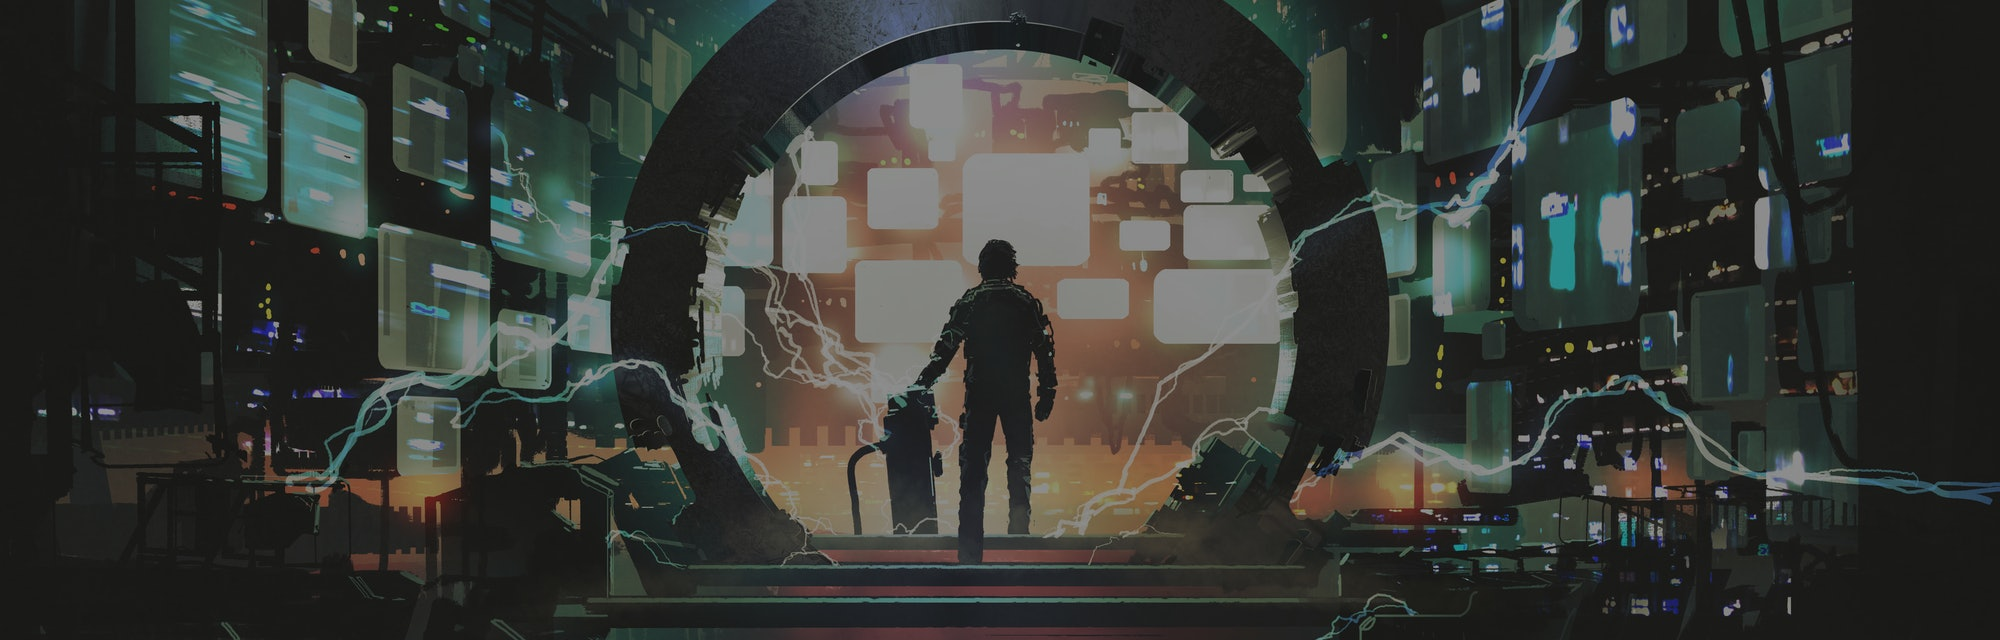 sci-fi concept showing a man standing at the futuristic portal, digital art style, illustration pain...